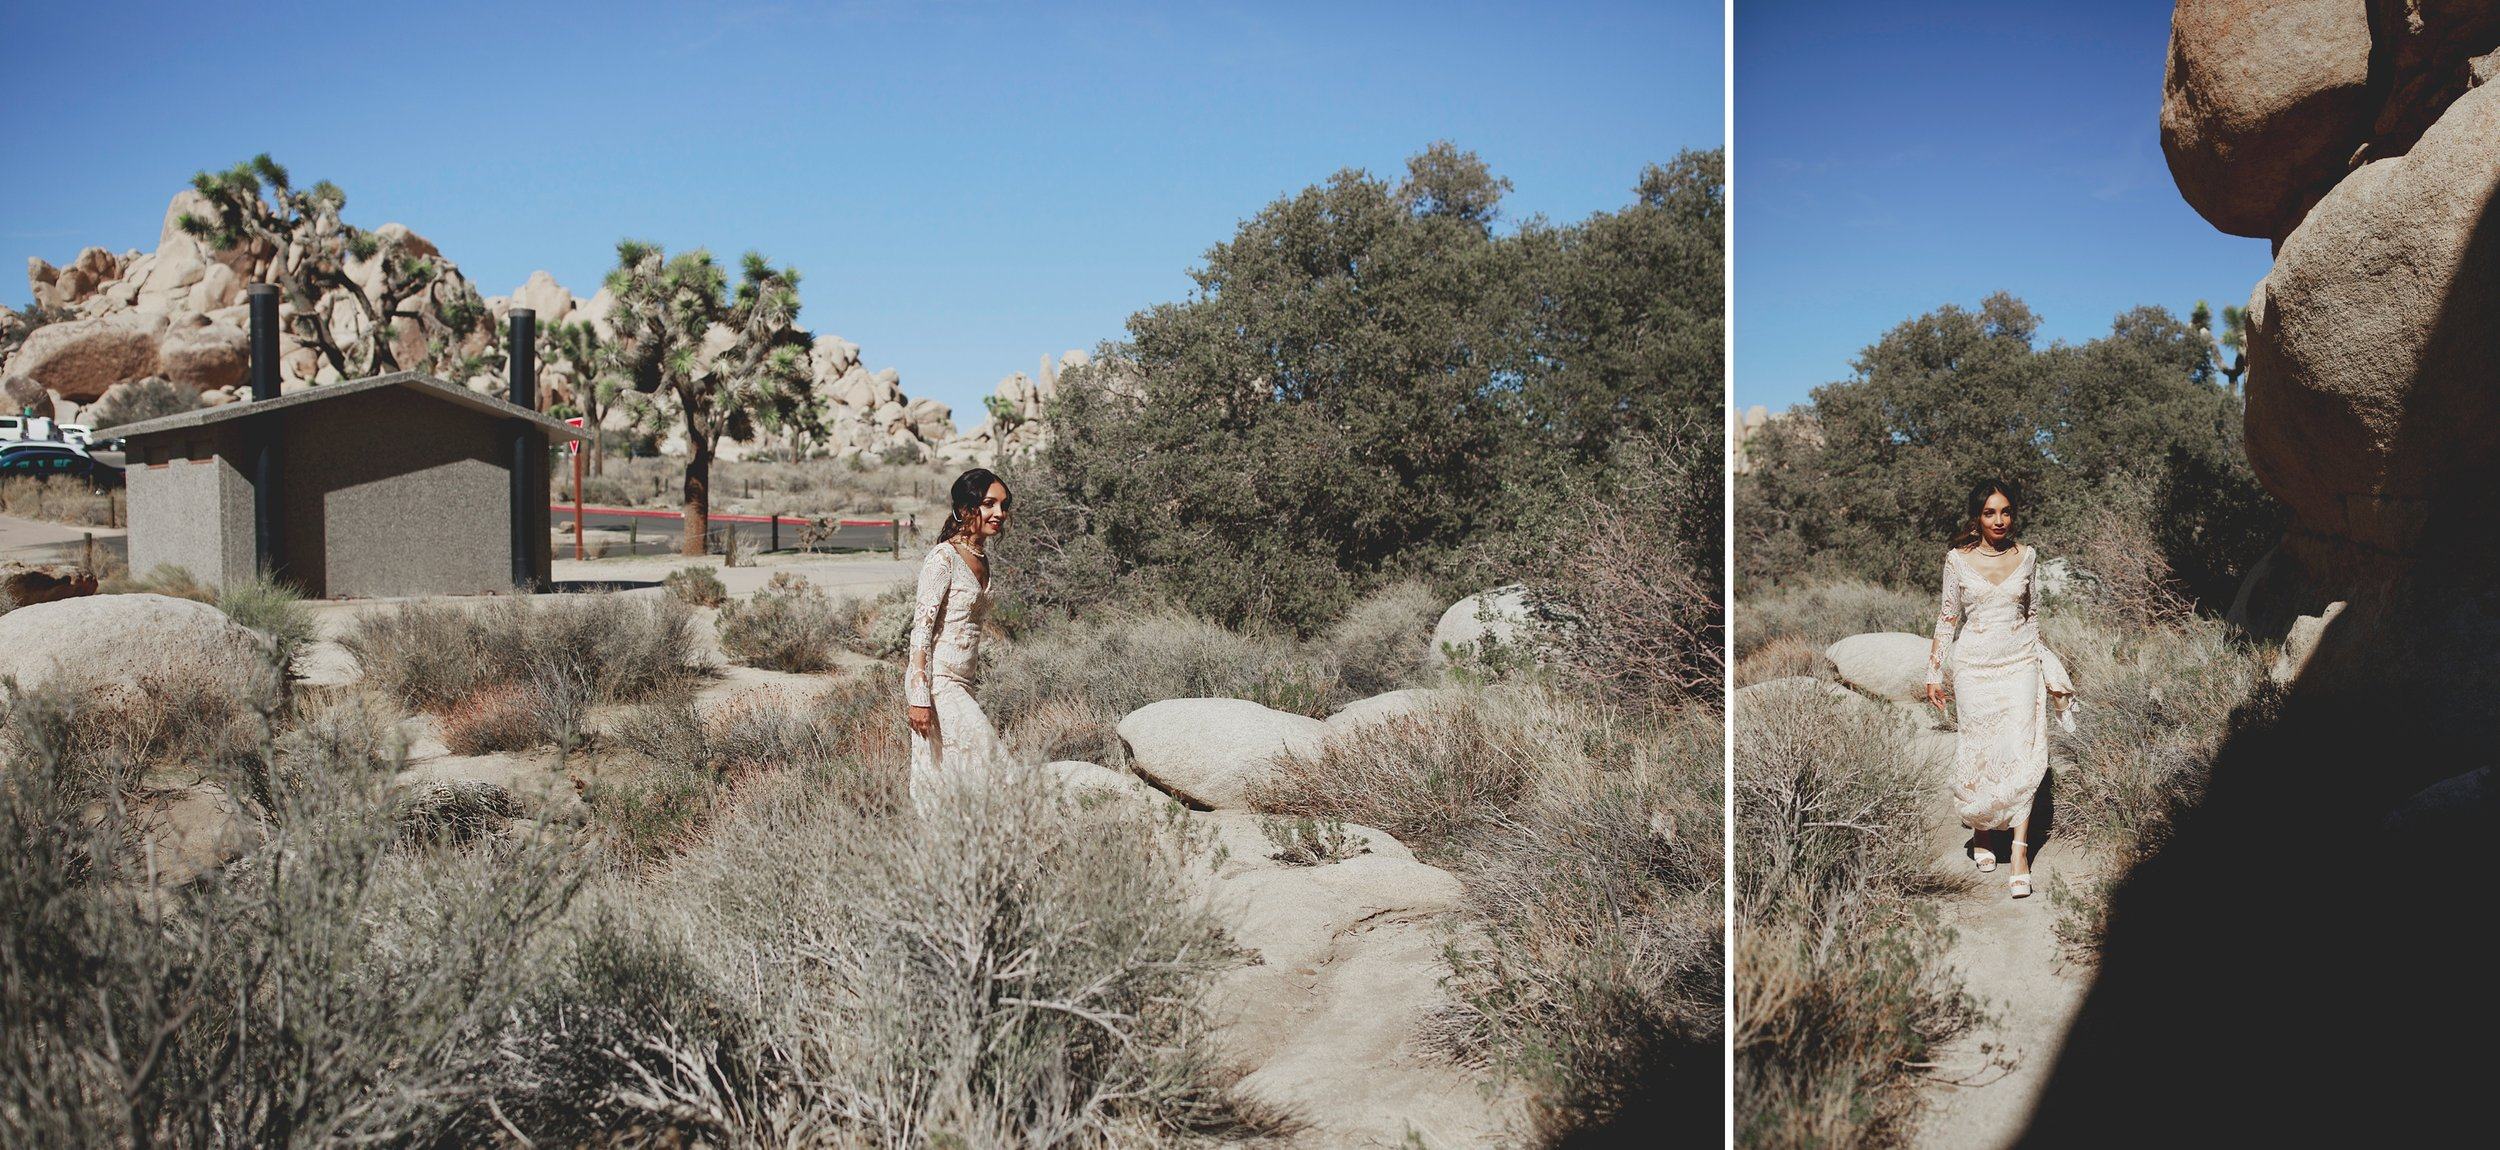 amanda_vanvels_joshua_tree_inn_wedding_029.jpg